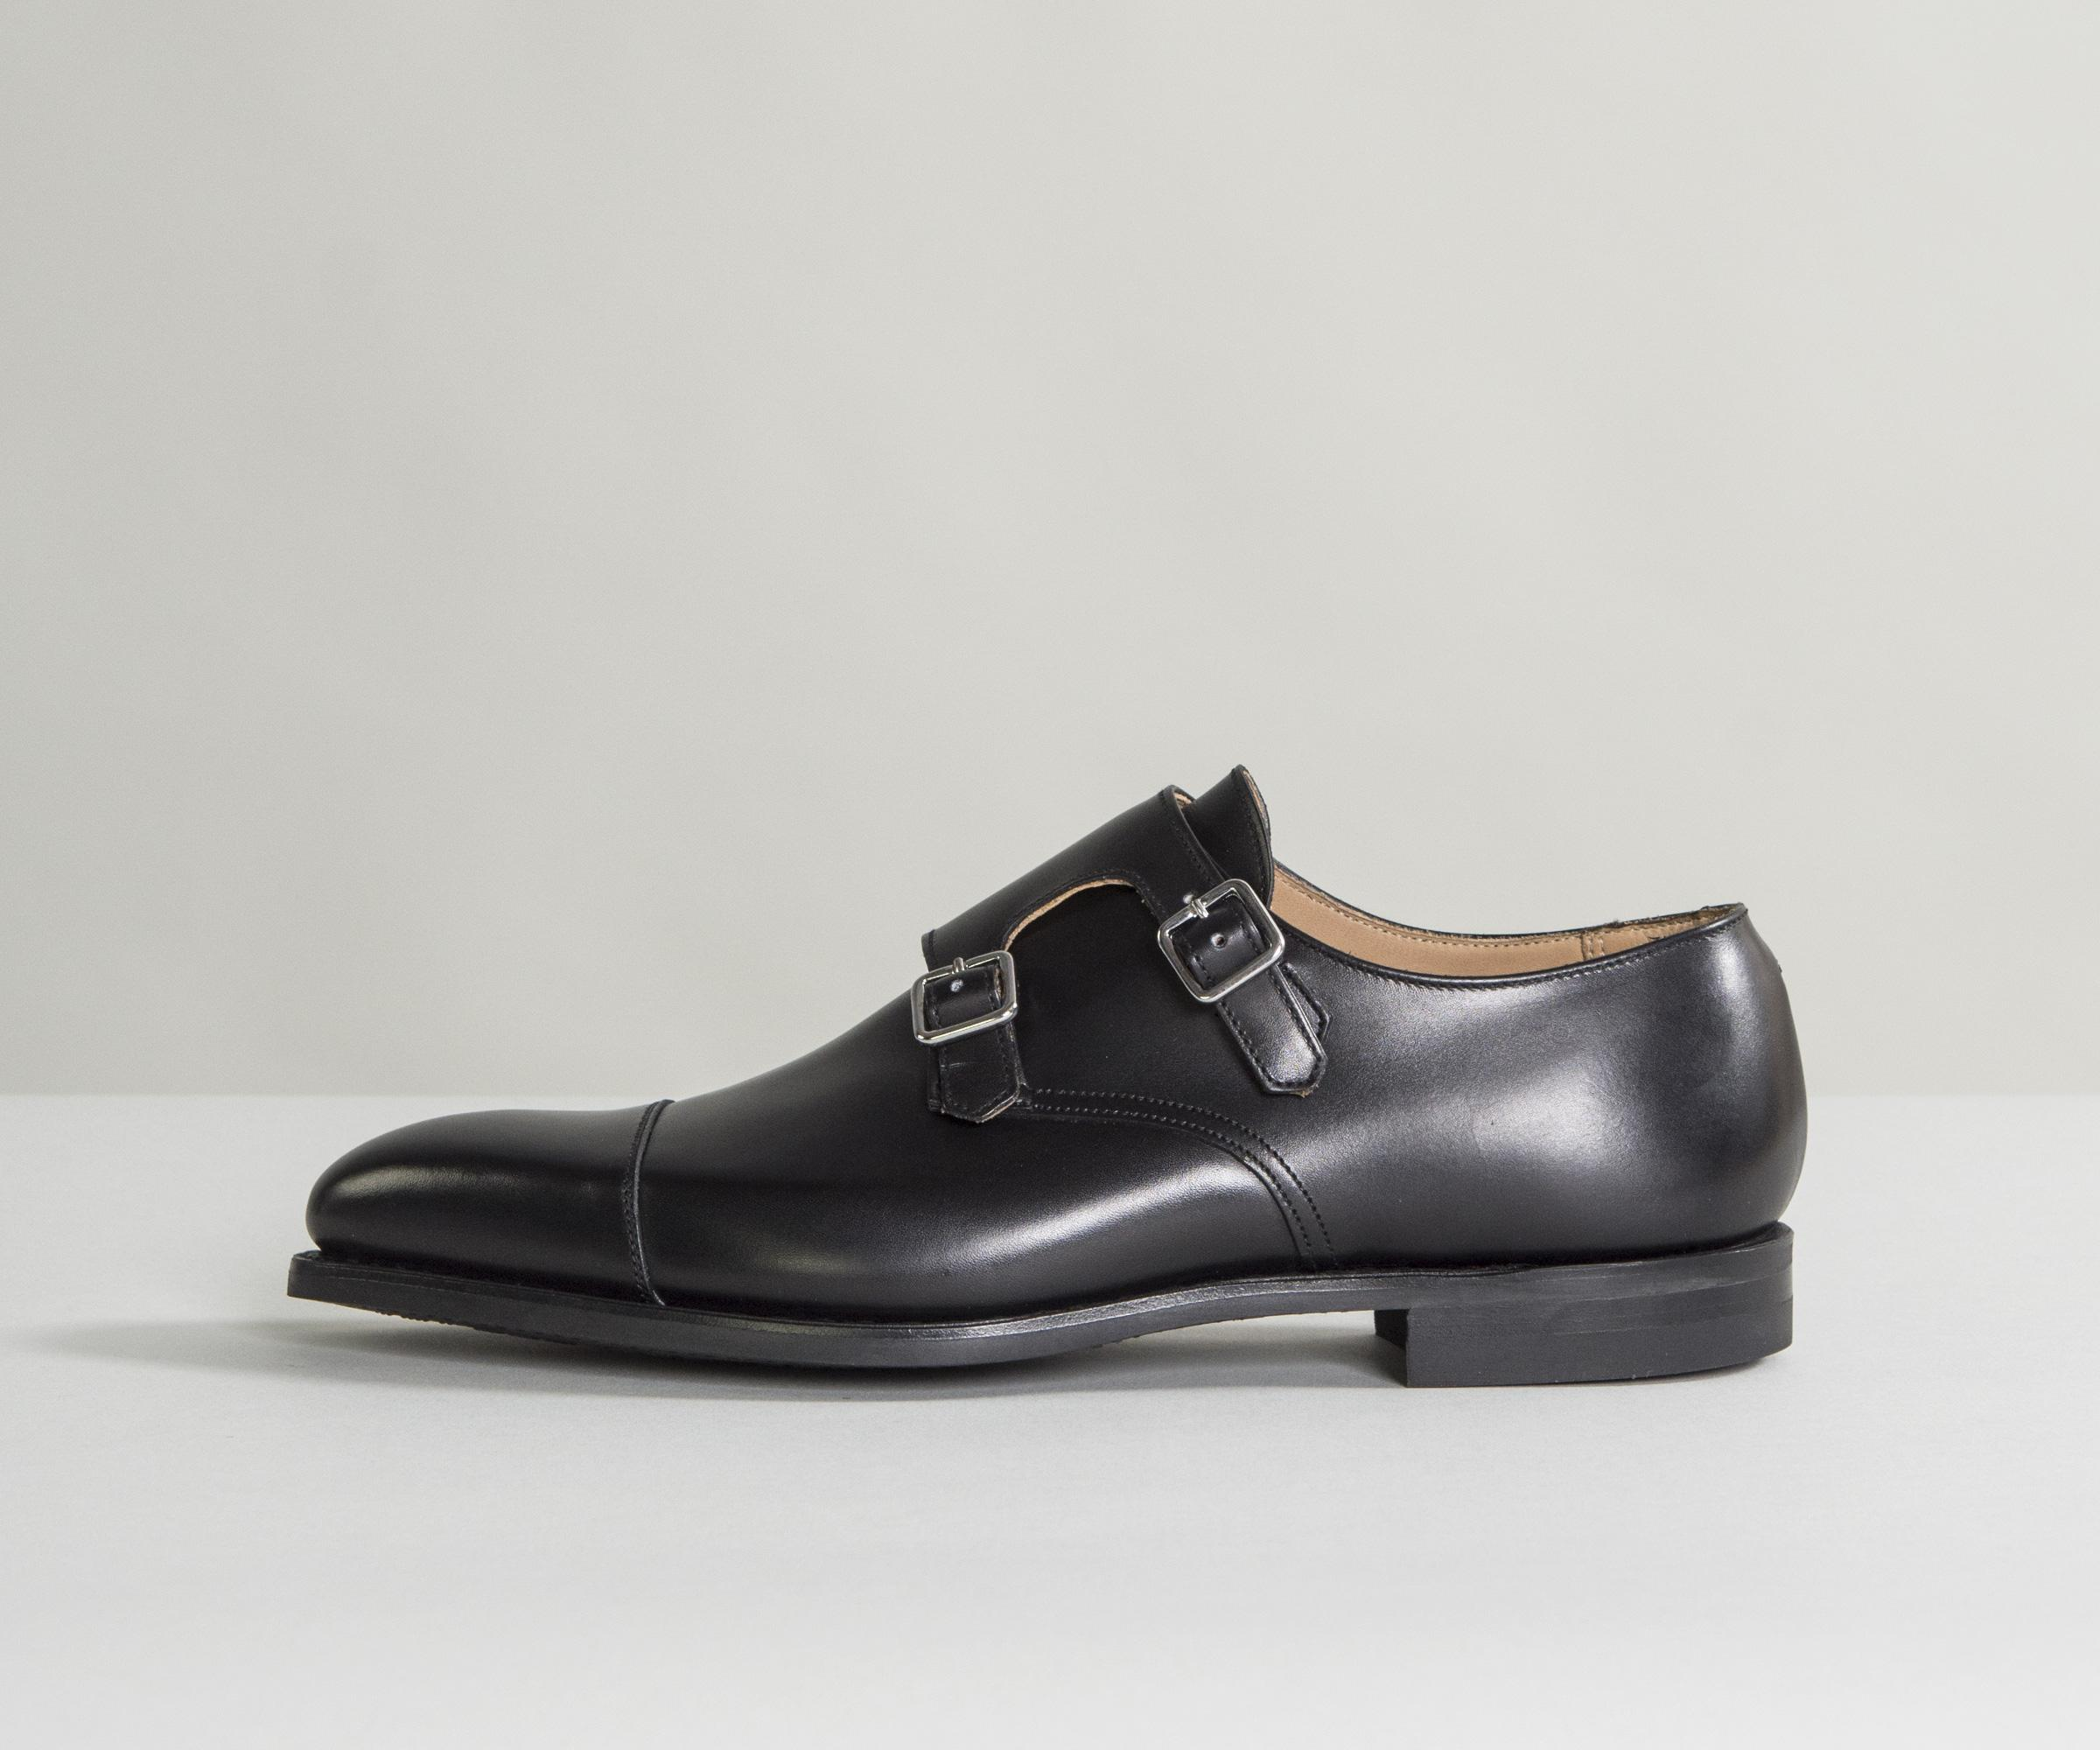 Buy Cheap 2018 Footlocker Finishline Cheap Price Lowndes Calf Leather Double Monk Shoes With City Soles Black Crockett & Jones Cheap And Nice In China Sale Online 3asBuFKw